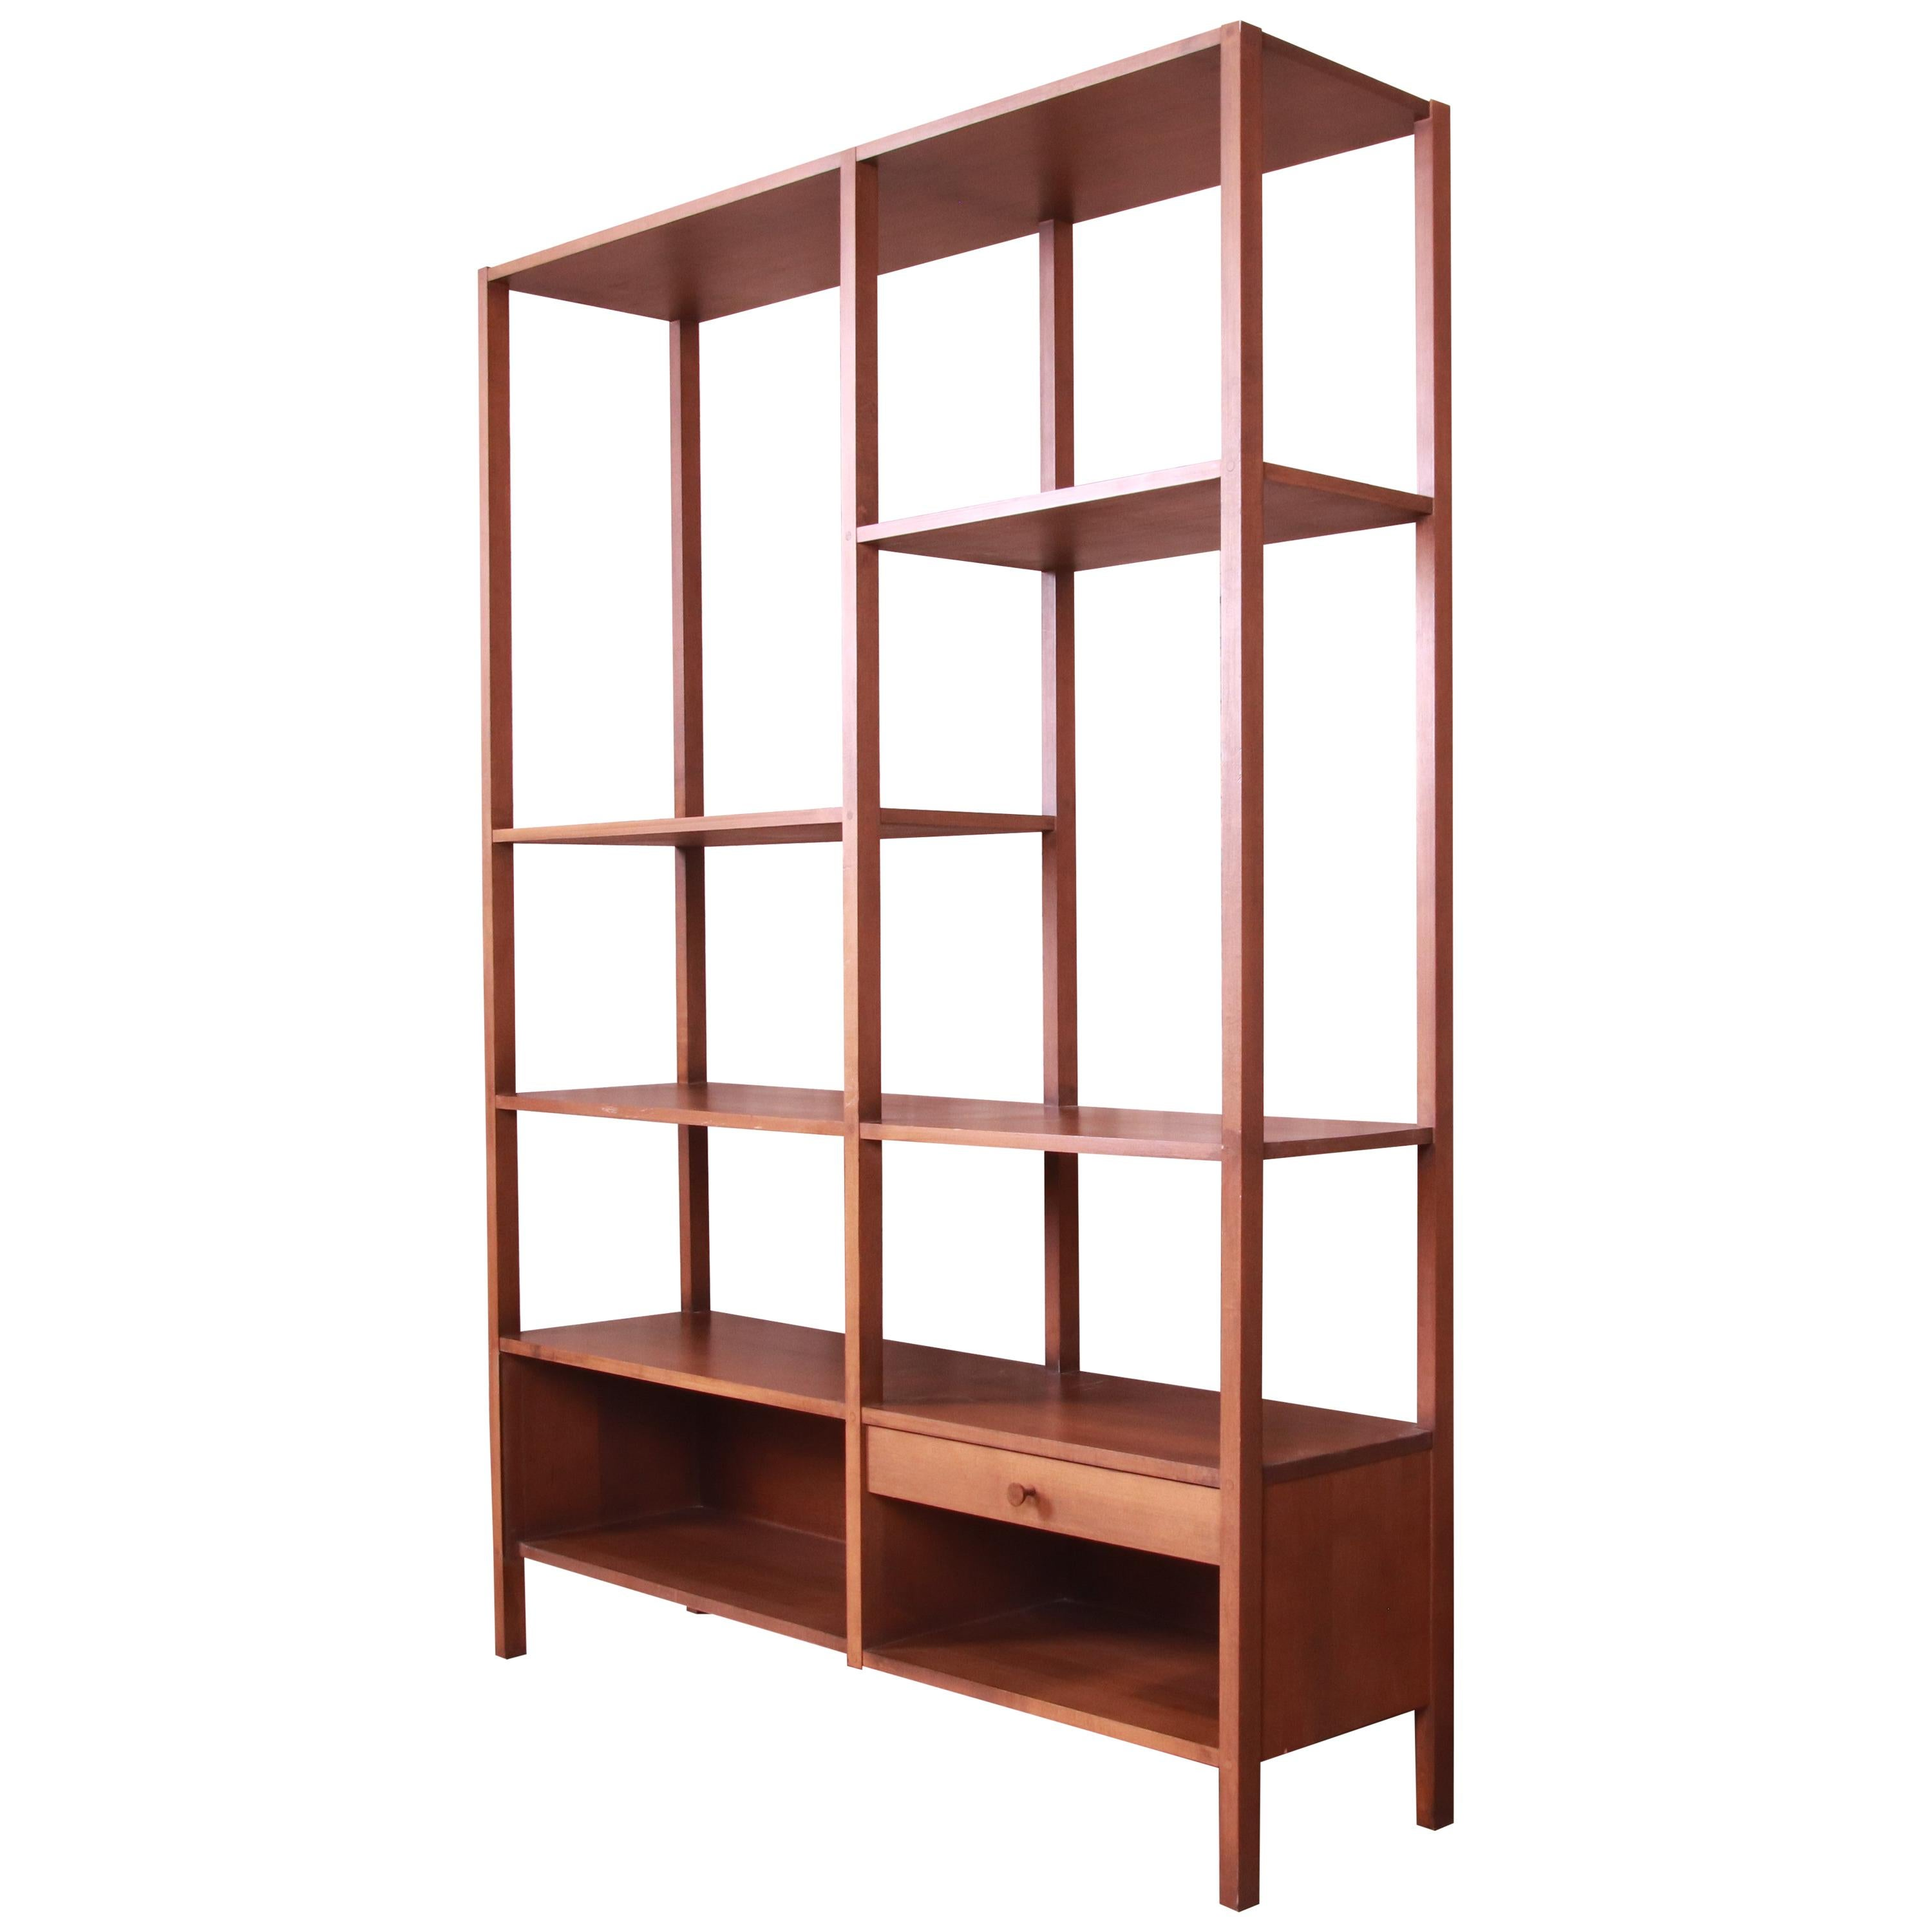 Paul McCobb Planner Group Solid Birch Bookshelf Wall Unit or Room Divider, 1950s